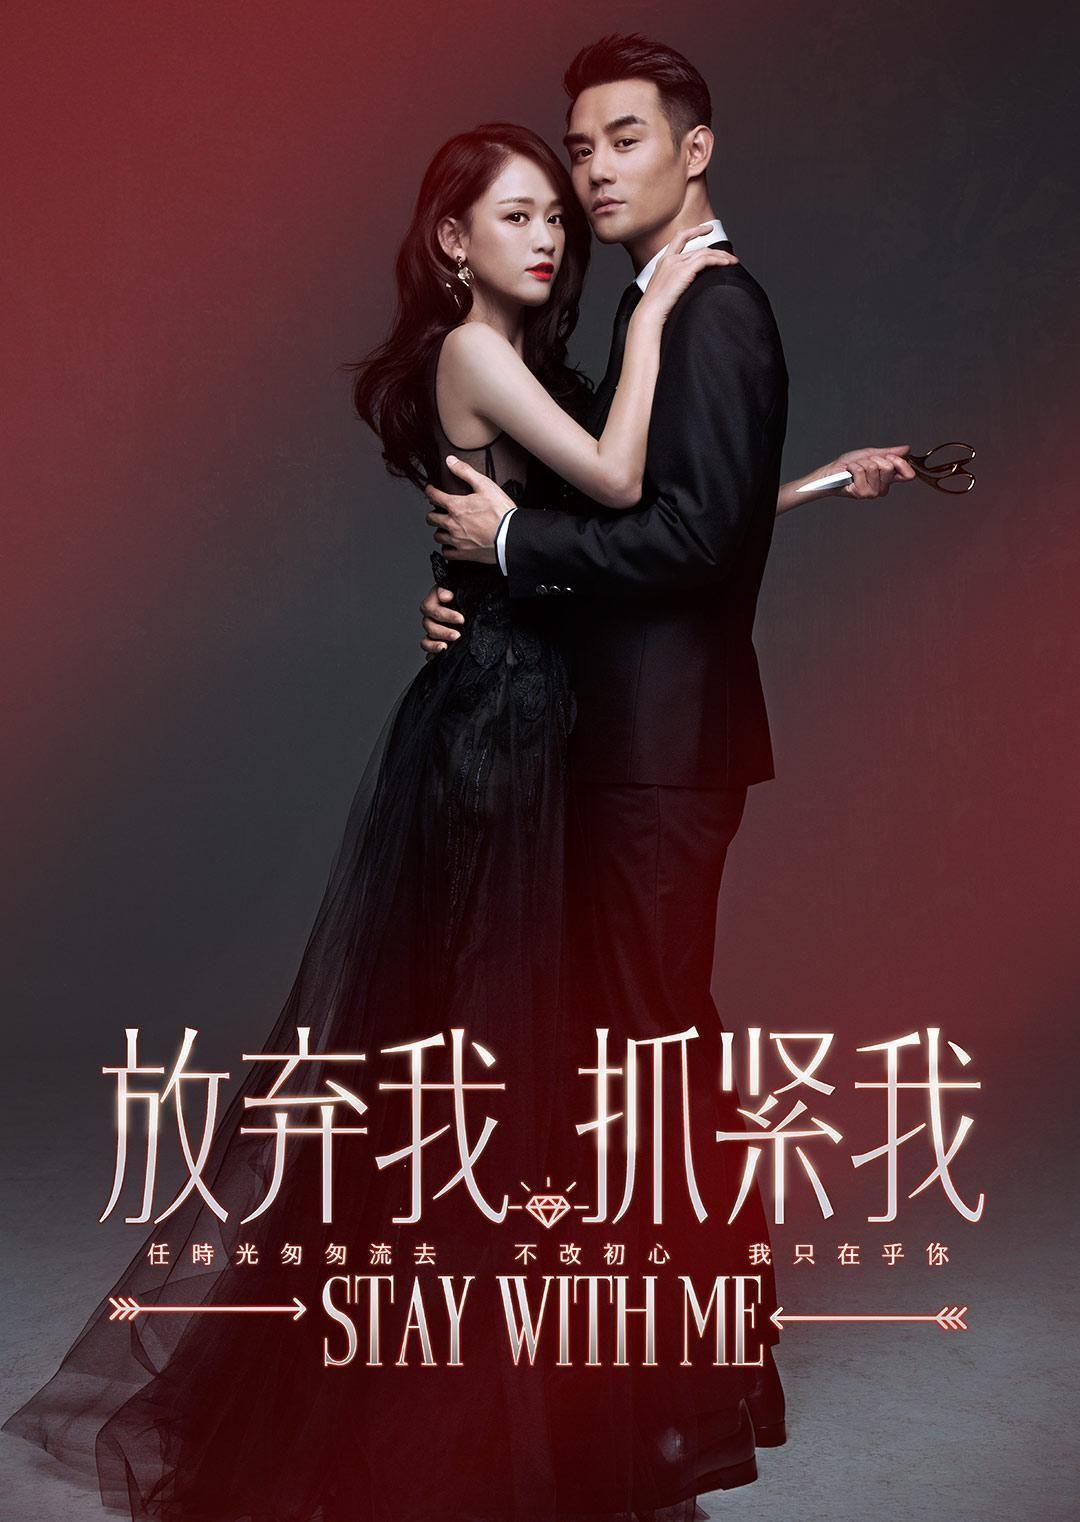 Stay with me (放弃我,抓紧我) [2016-2017] Chinese Drama - Starring: Chen Qiao En and Wang Kai